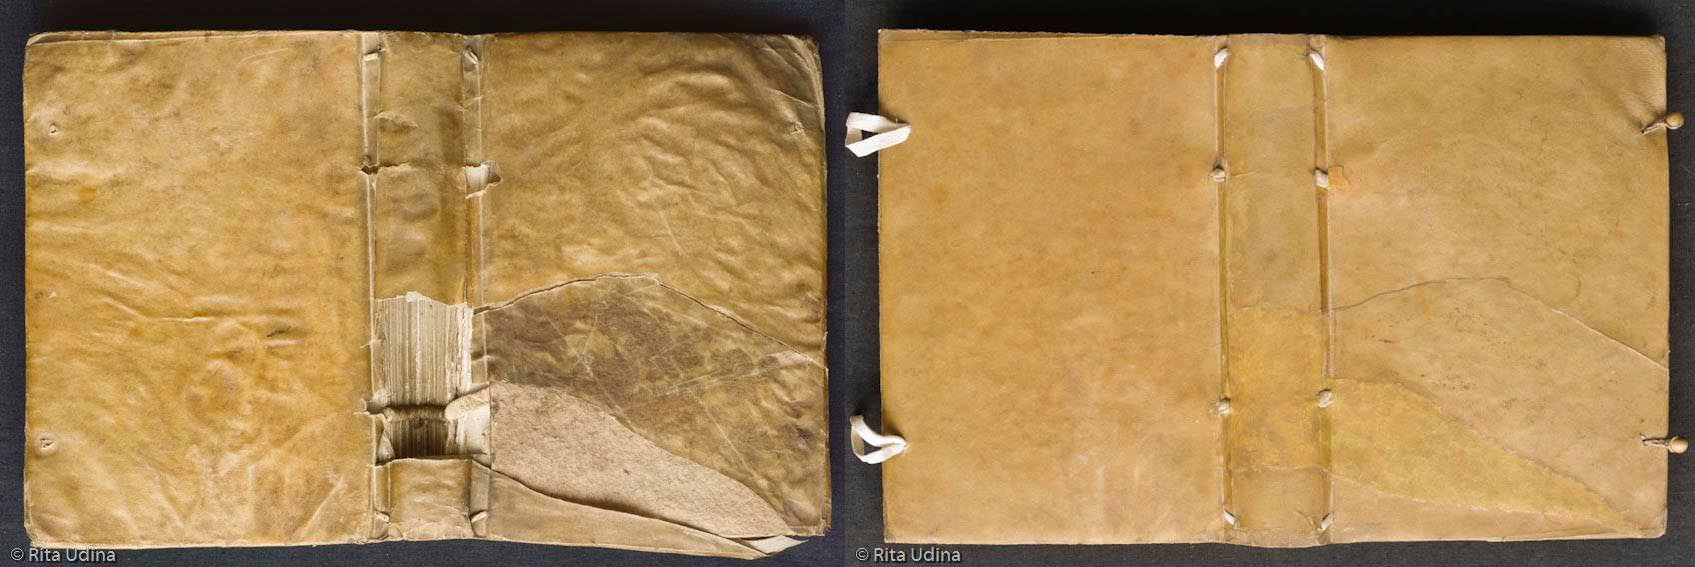 Semi limp vellum binding conservation treatment (before and after)